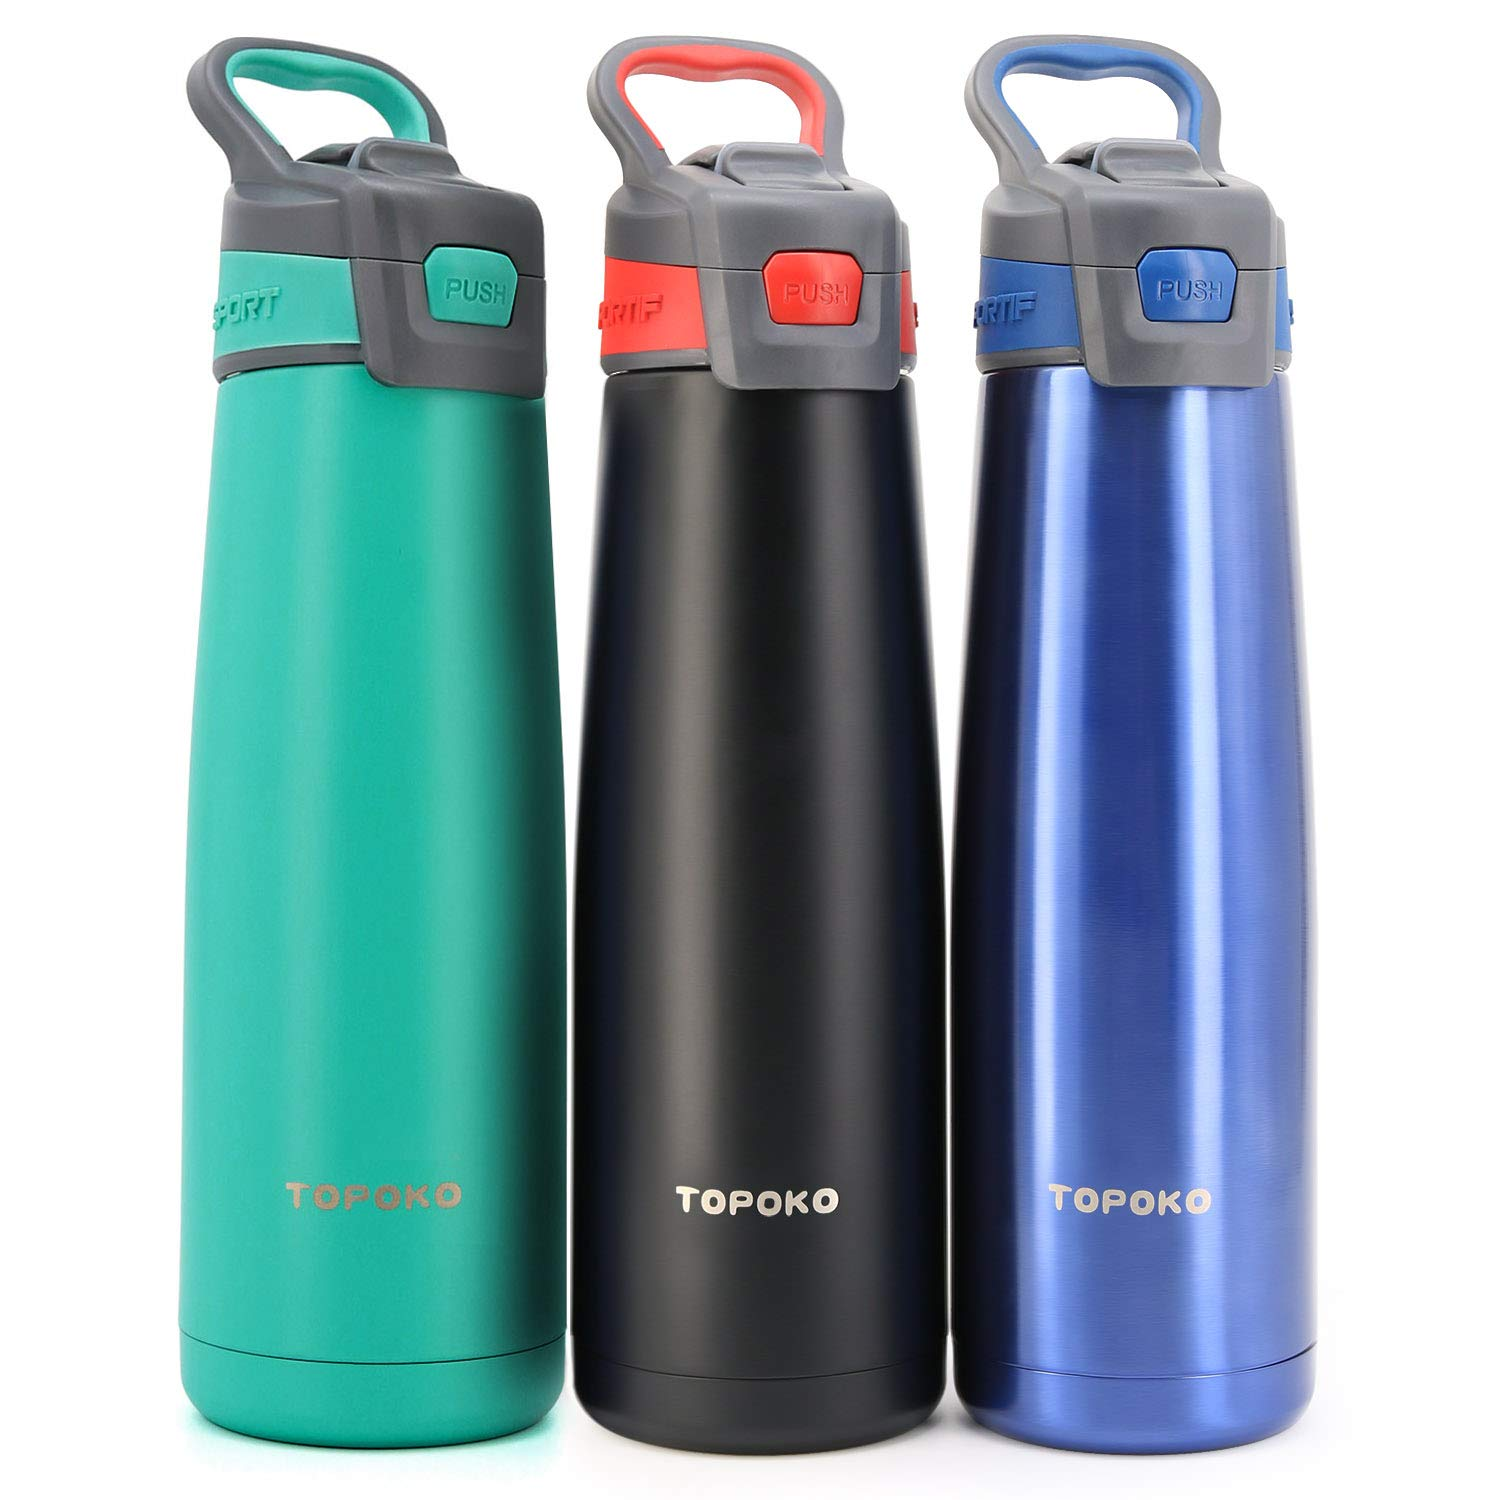 Auto Flip Stainless Steel Bottle Double Wall Water Bottle, Vacuum Insulated Stainless Steel Bottle, Sweat Proof, Leak Proof, Wide Mouth, Vacuum Sealed & Insulated, With Carrying Handle-25 OZ -Mint